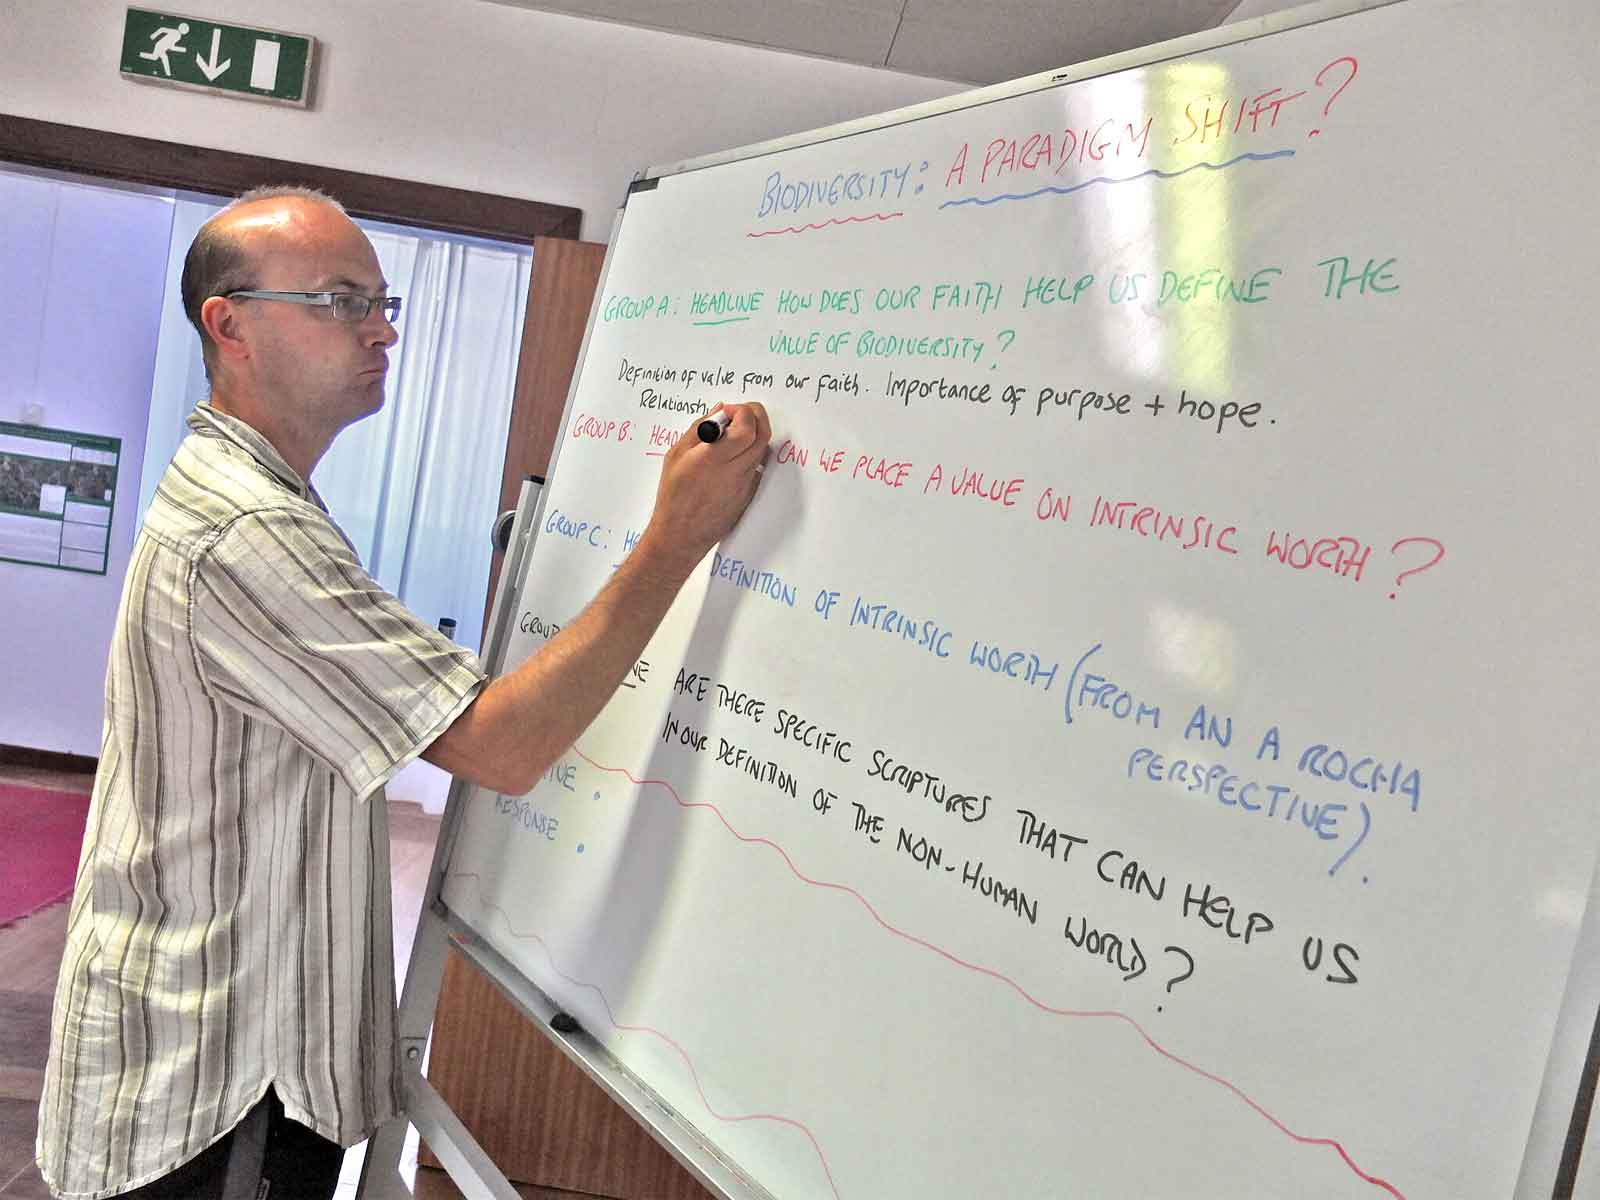 An A Rocha volunteer takes notes during a brainstorm on religion and biodiversity at a leader's forum in Portugal.